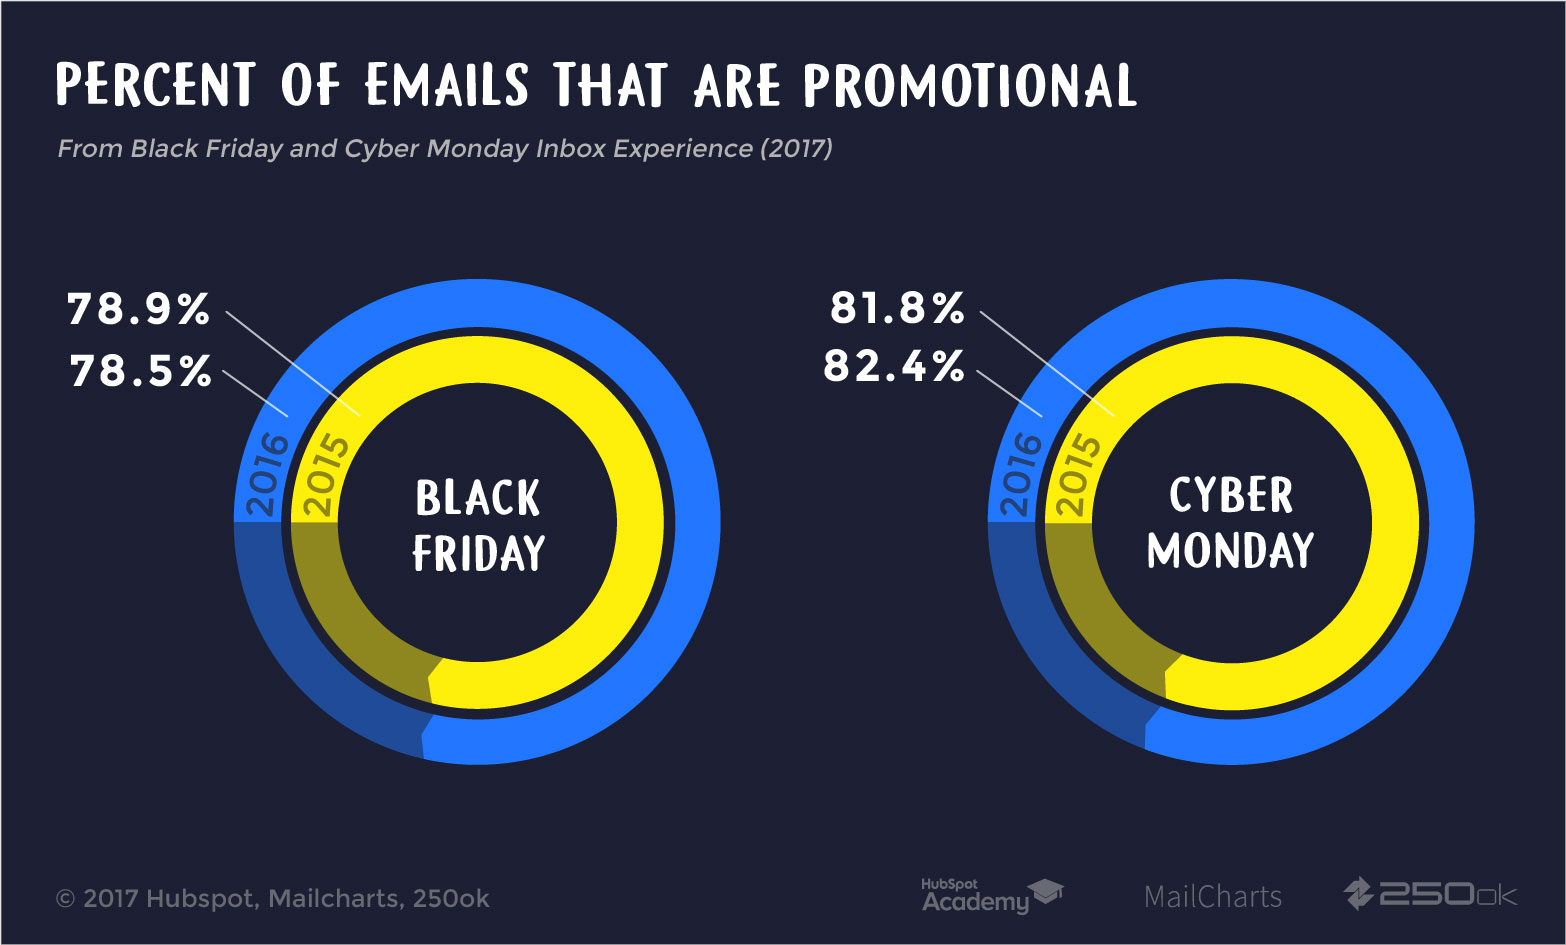 Percent of Promotional Emails